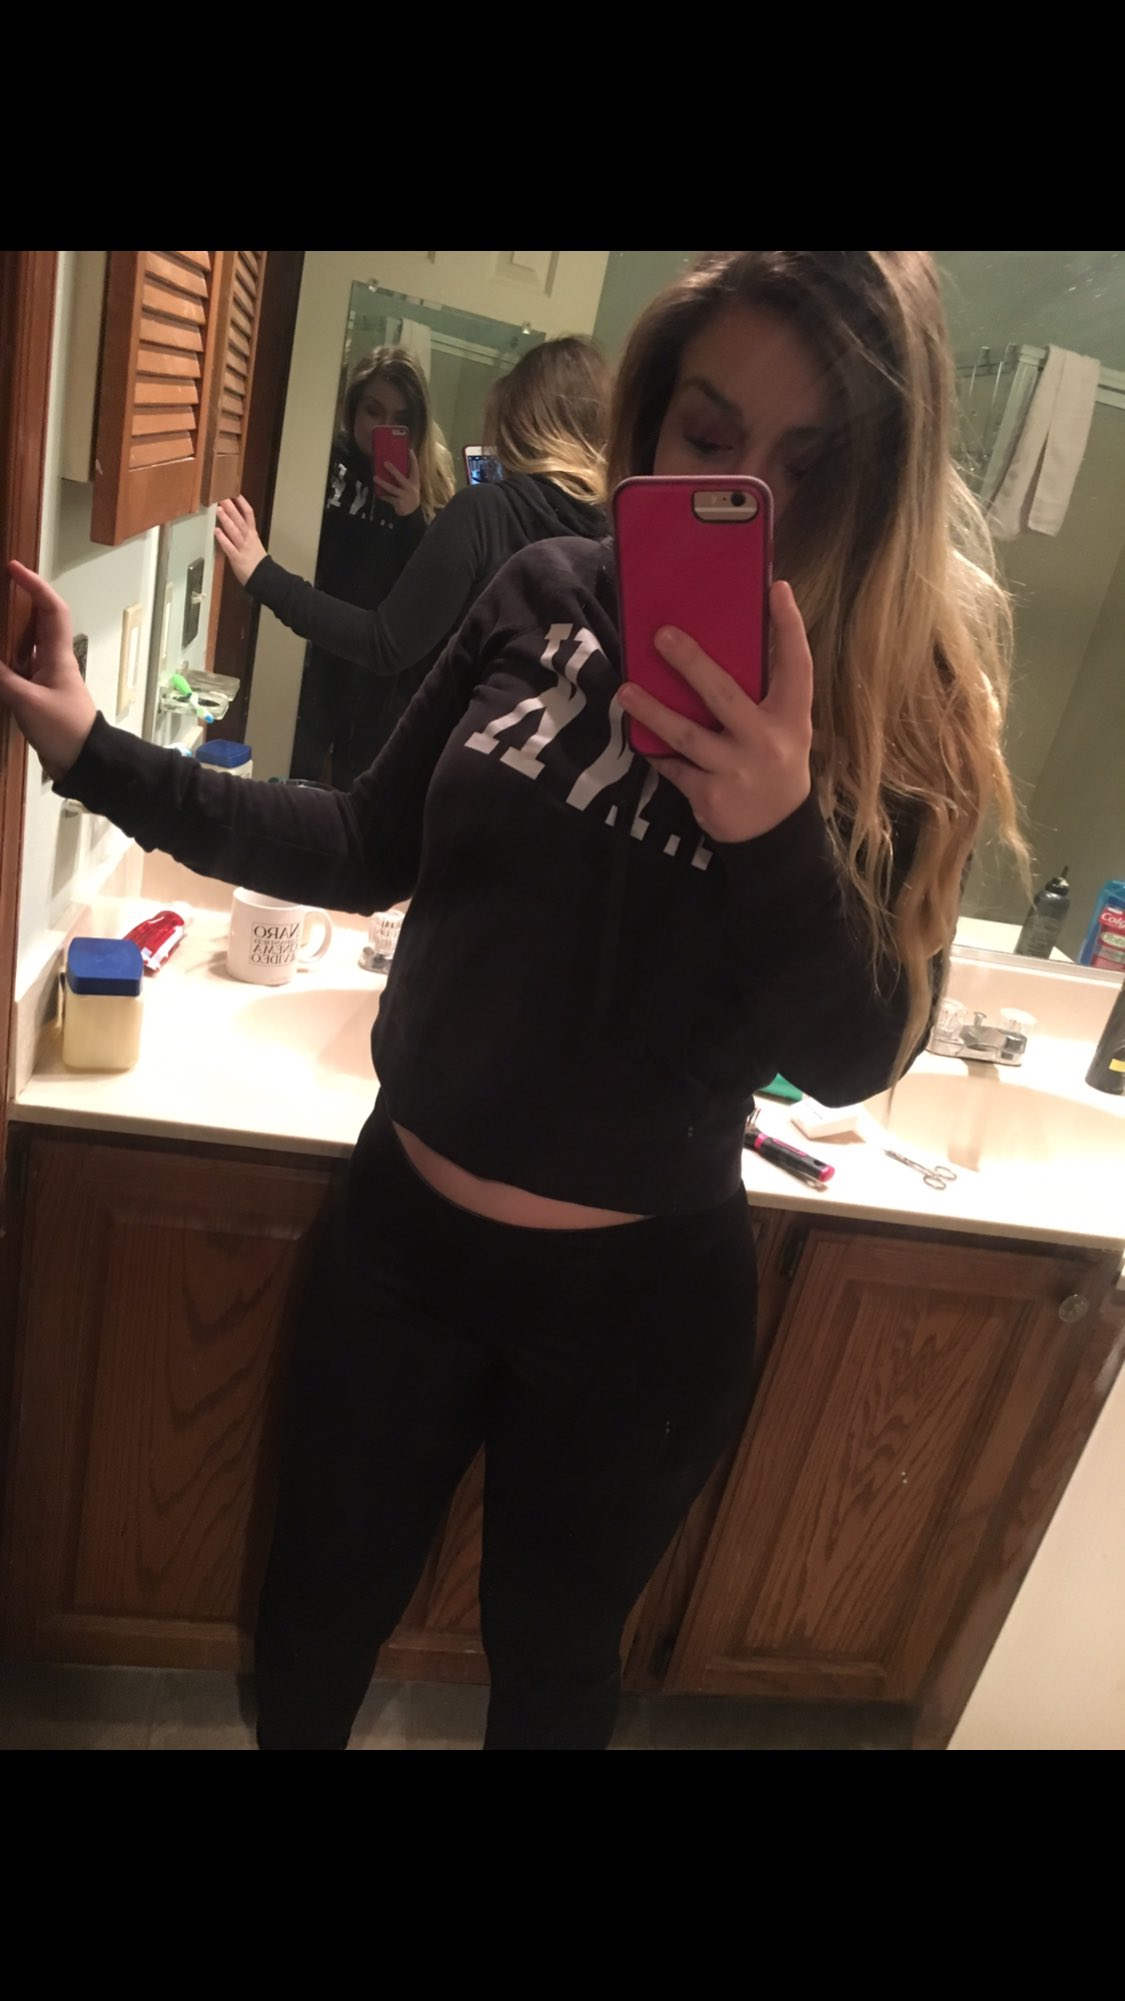 Sam on Twitter: RT and Follow for a free nude no